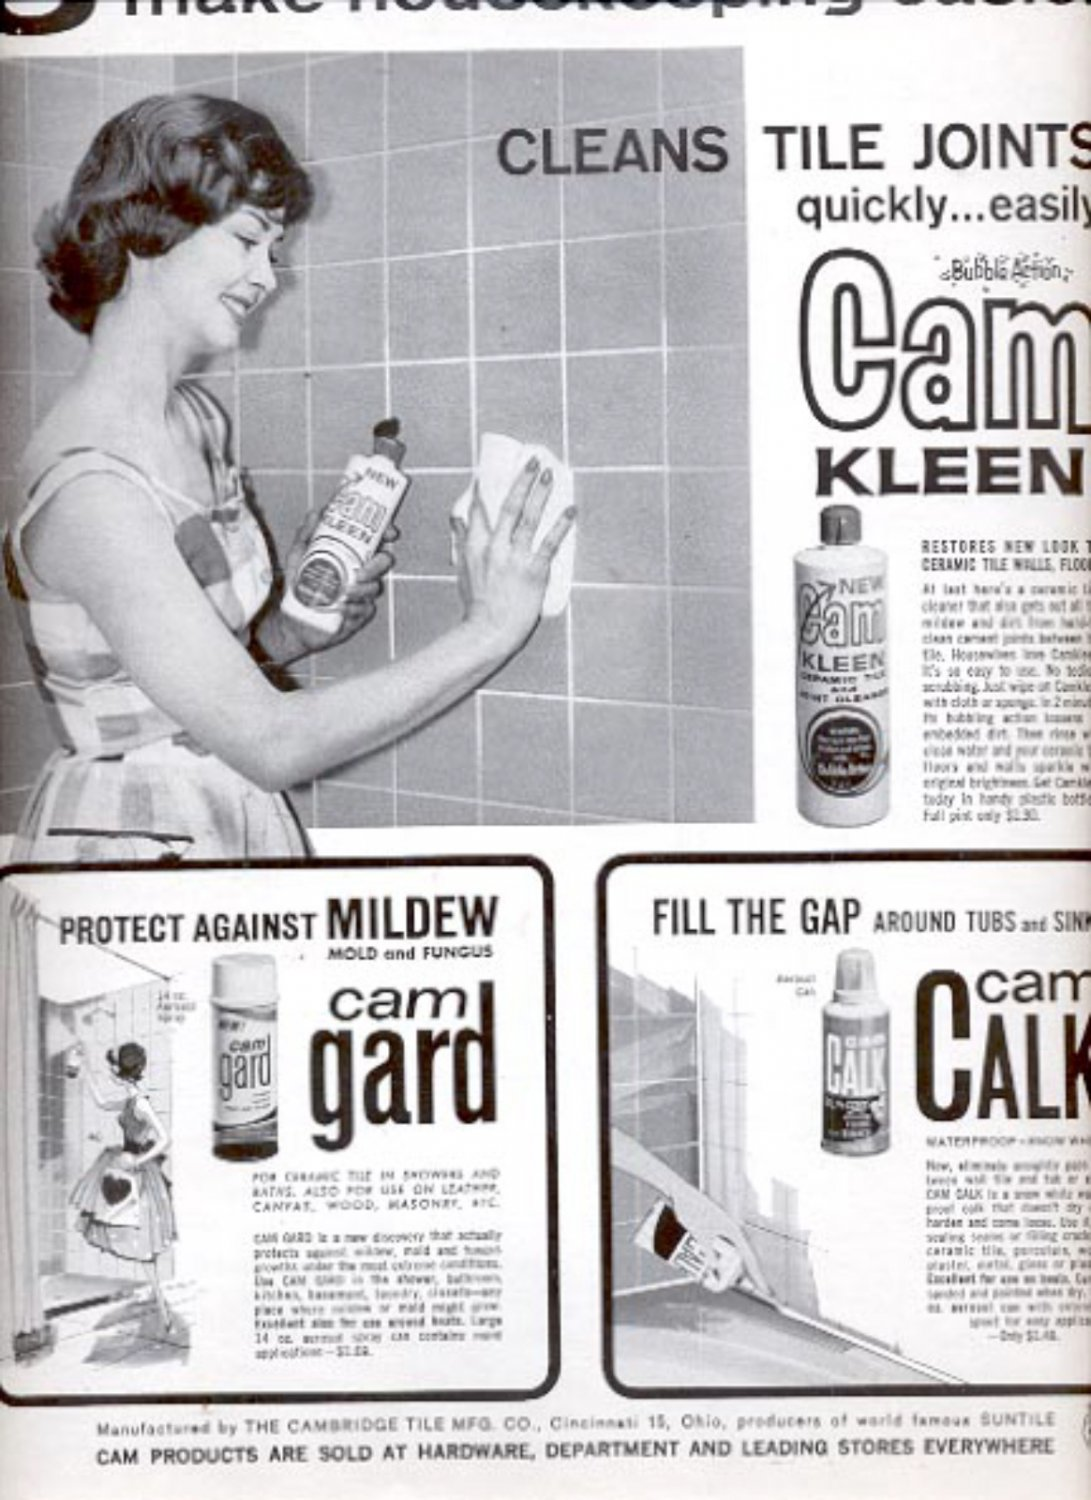 1963  Cam Products - Cam Keen, Cam Gard, Cam Calk  ad (#5376)